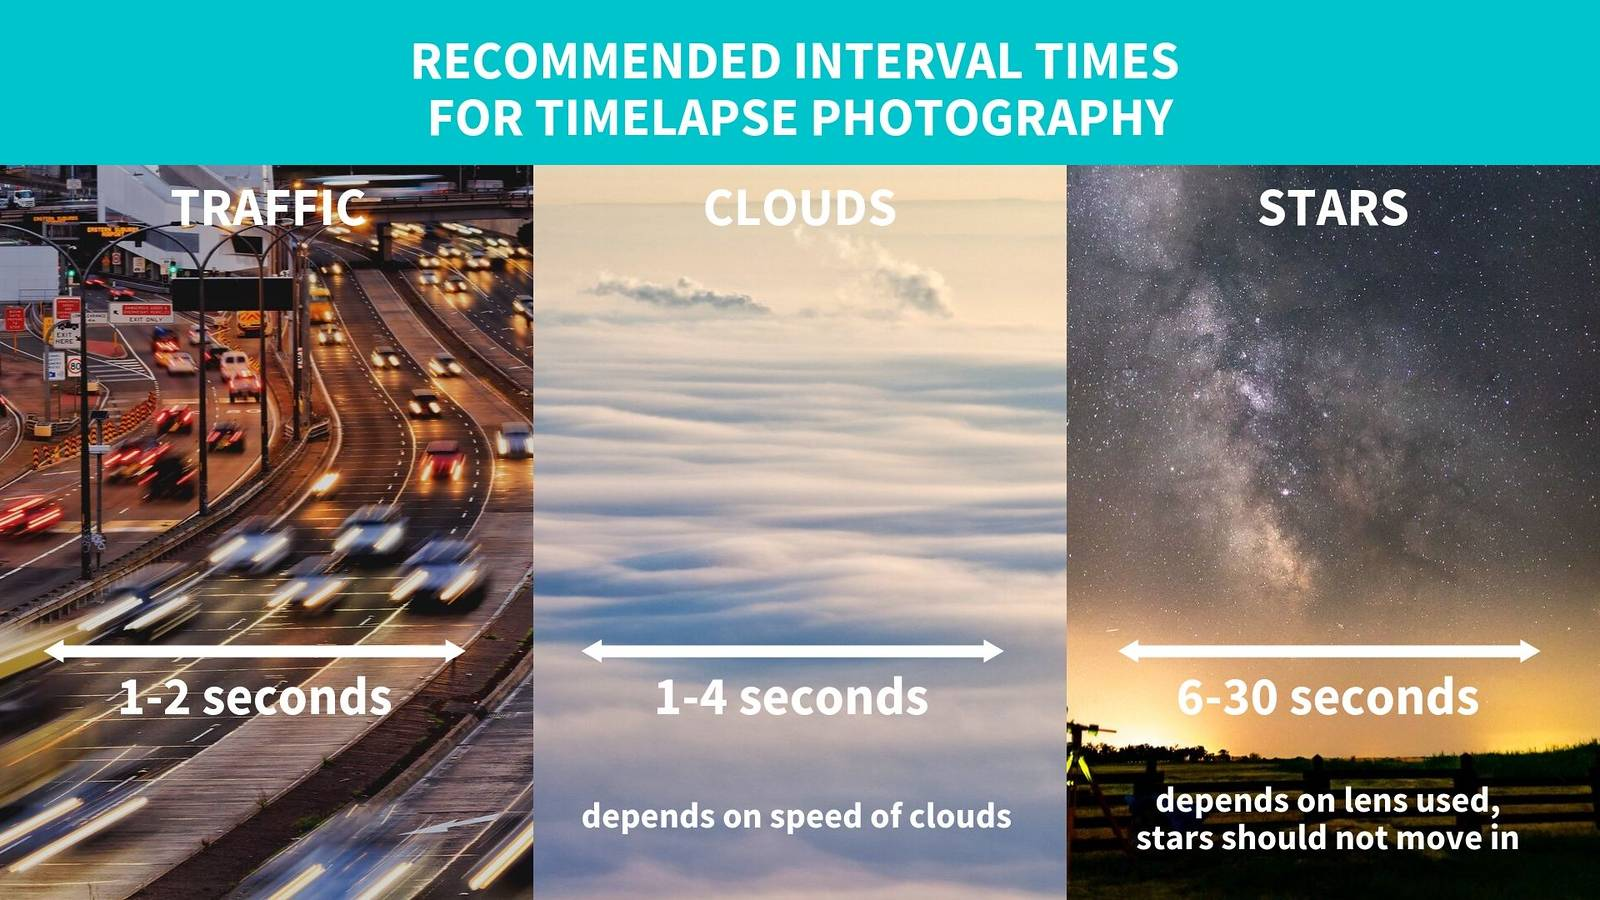 recommended interval times for timelapse photography